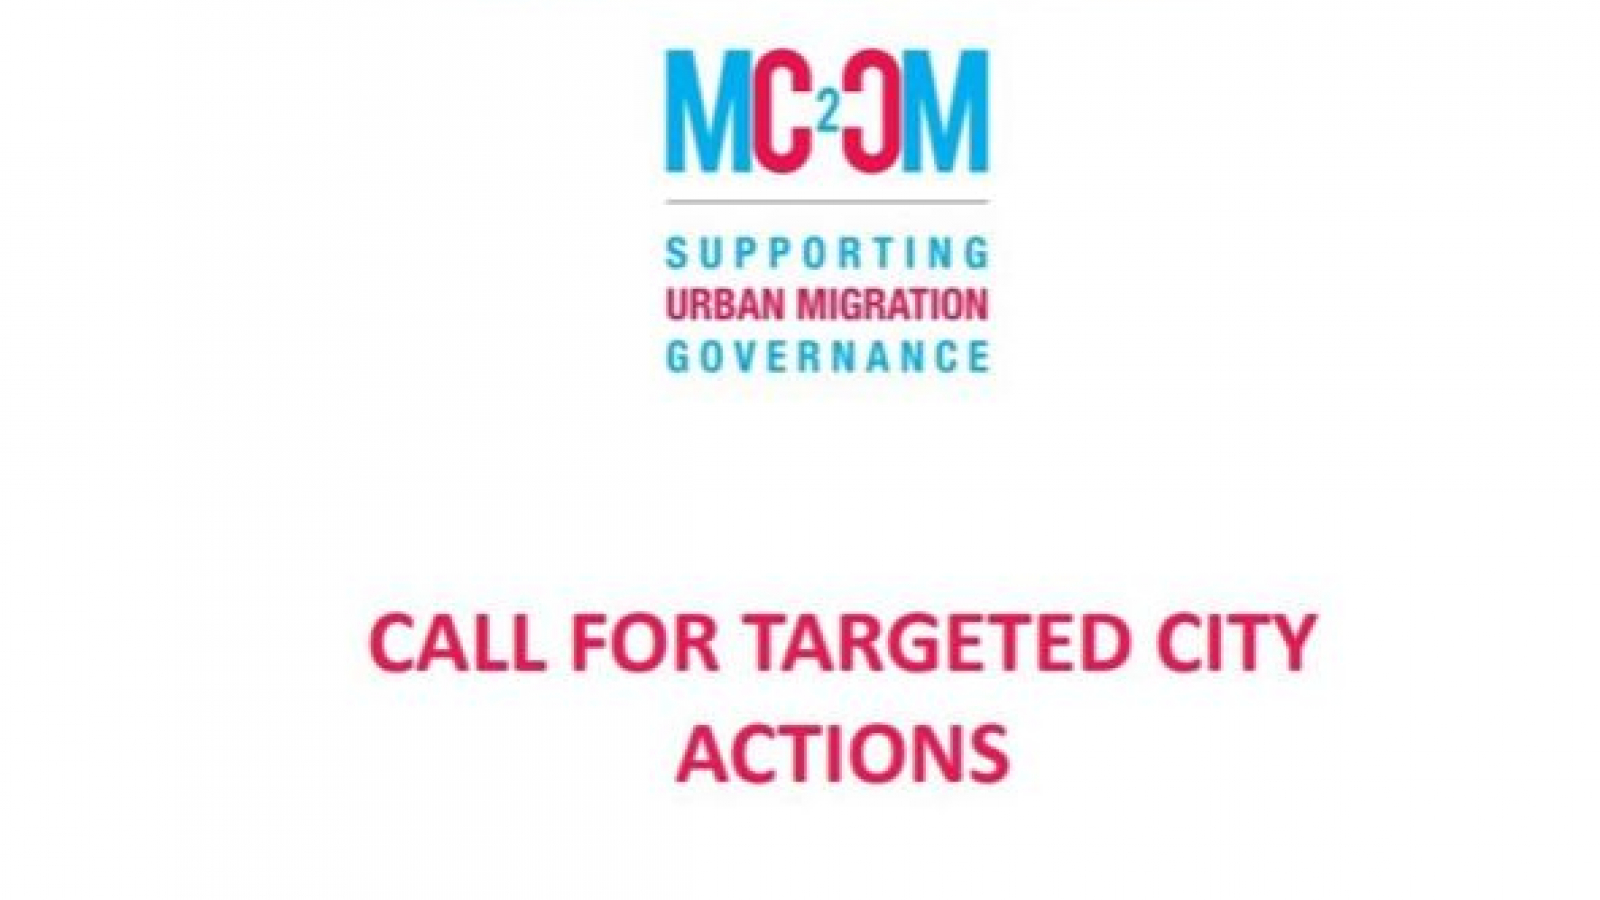 The Mediterranean City-to-City Migration Call for Targeted City Actions launched